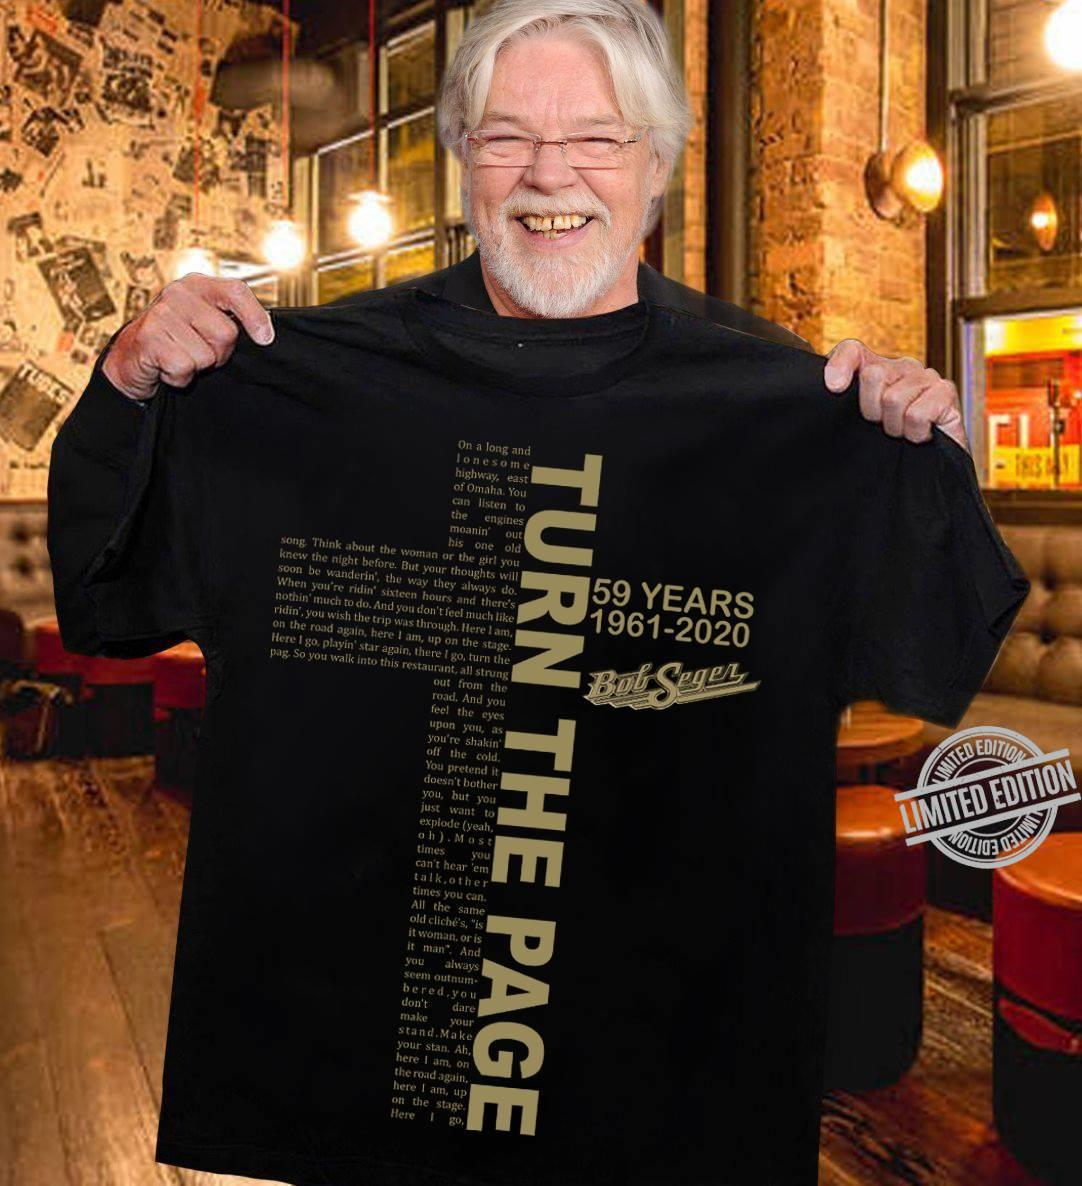 Turn The Page 59 Years 1961-2020 Shirt